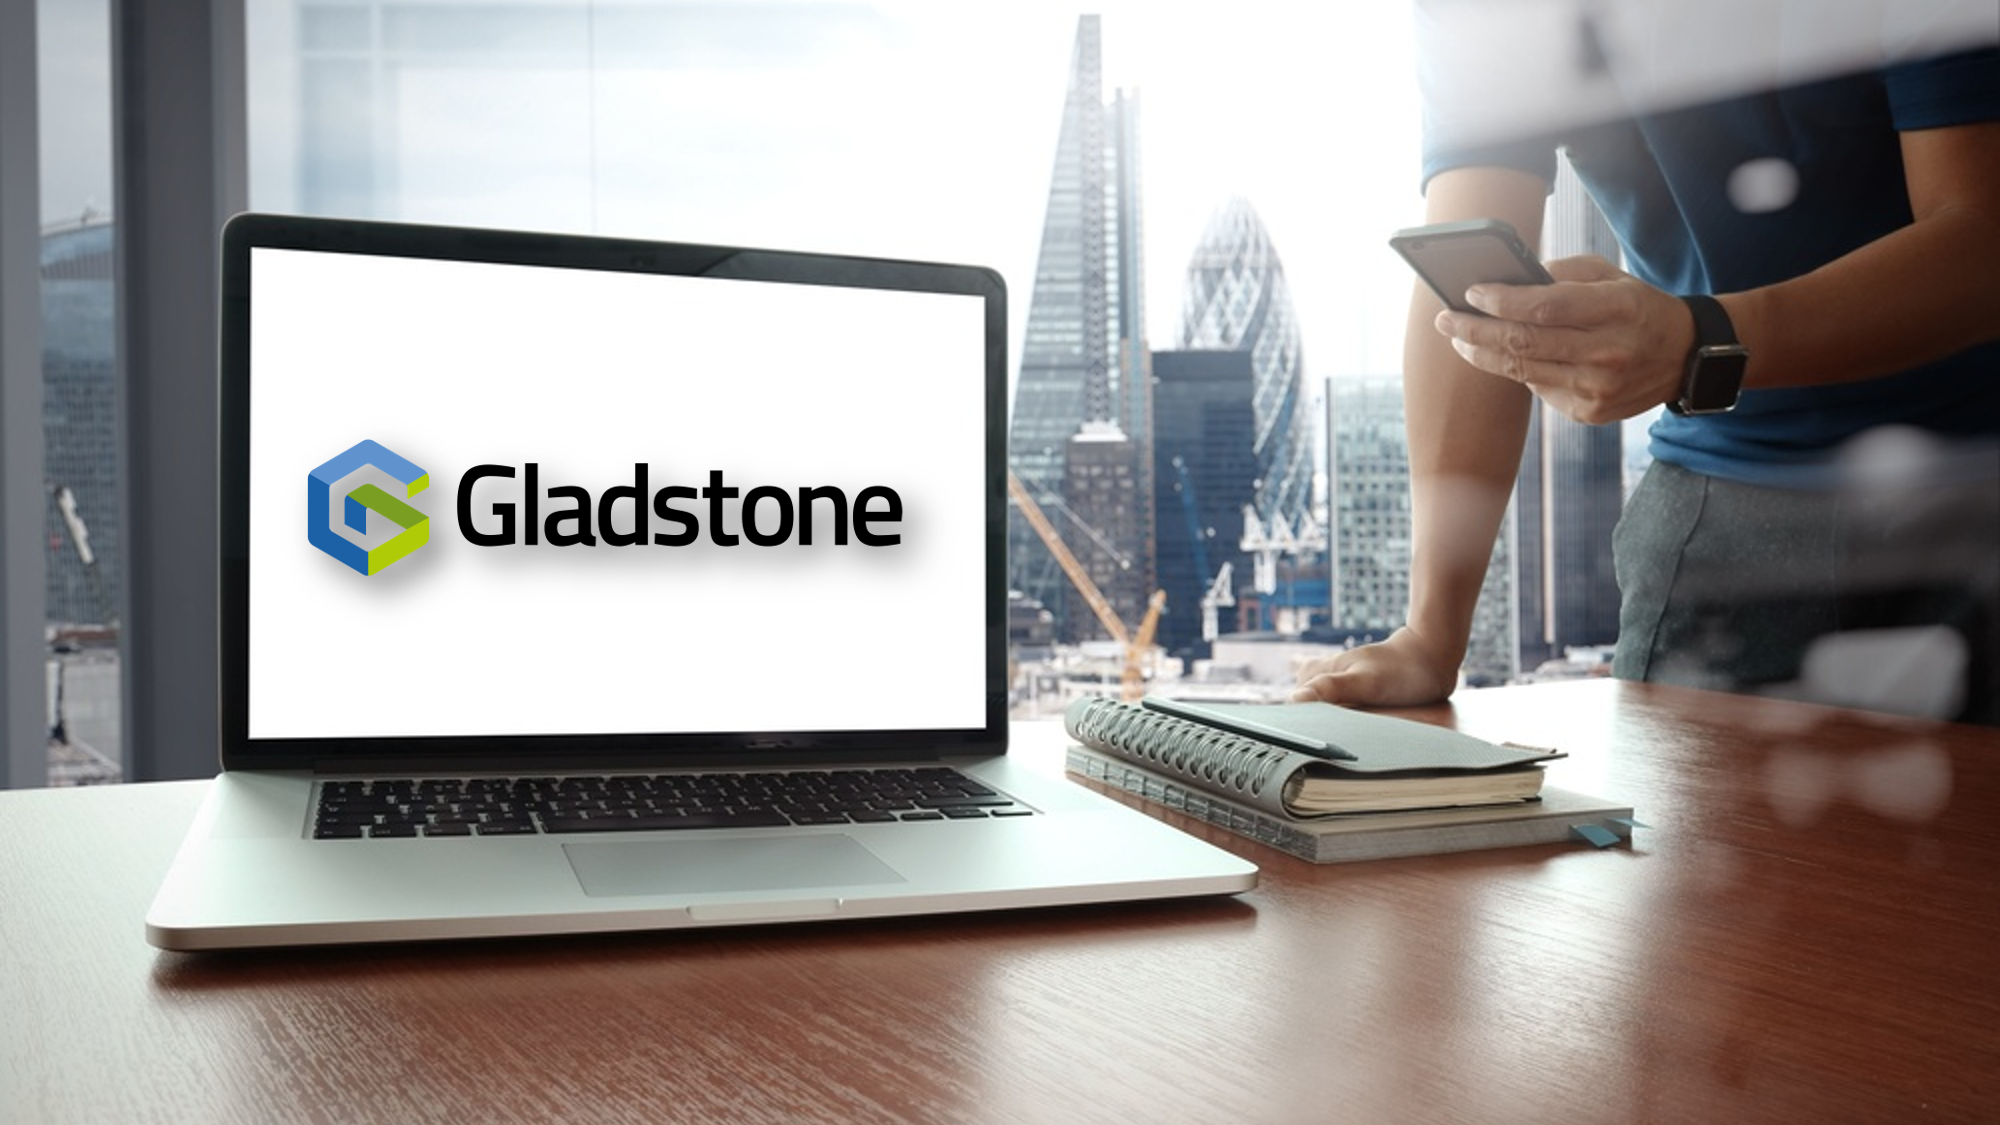 Desk with PC on it with Gladstone logo